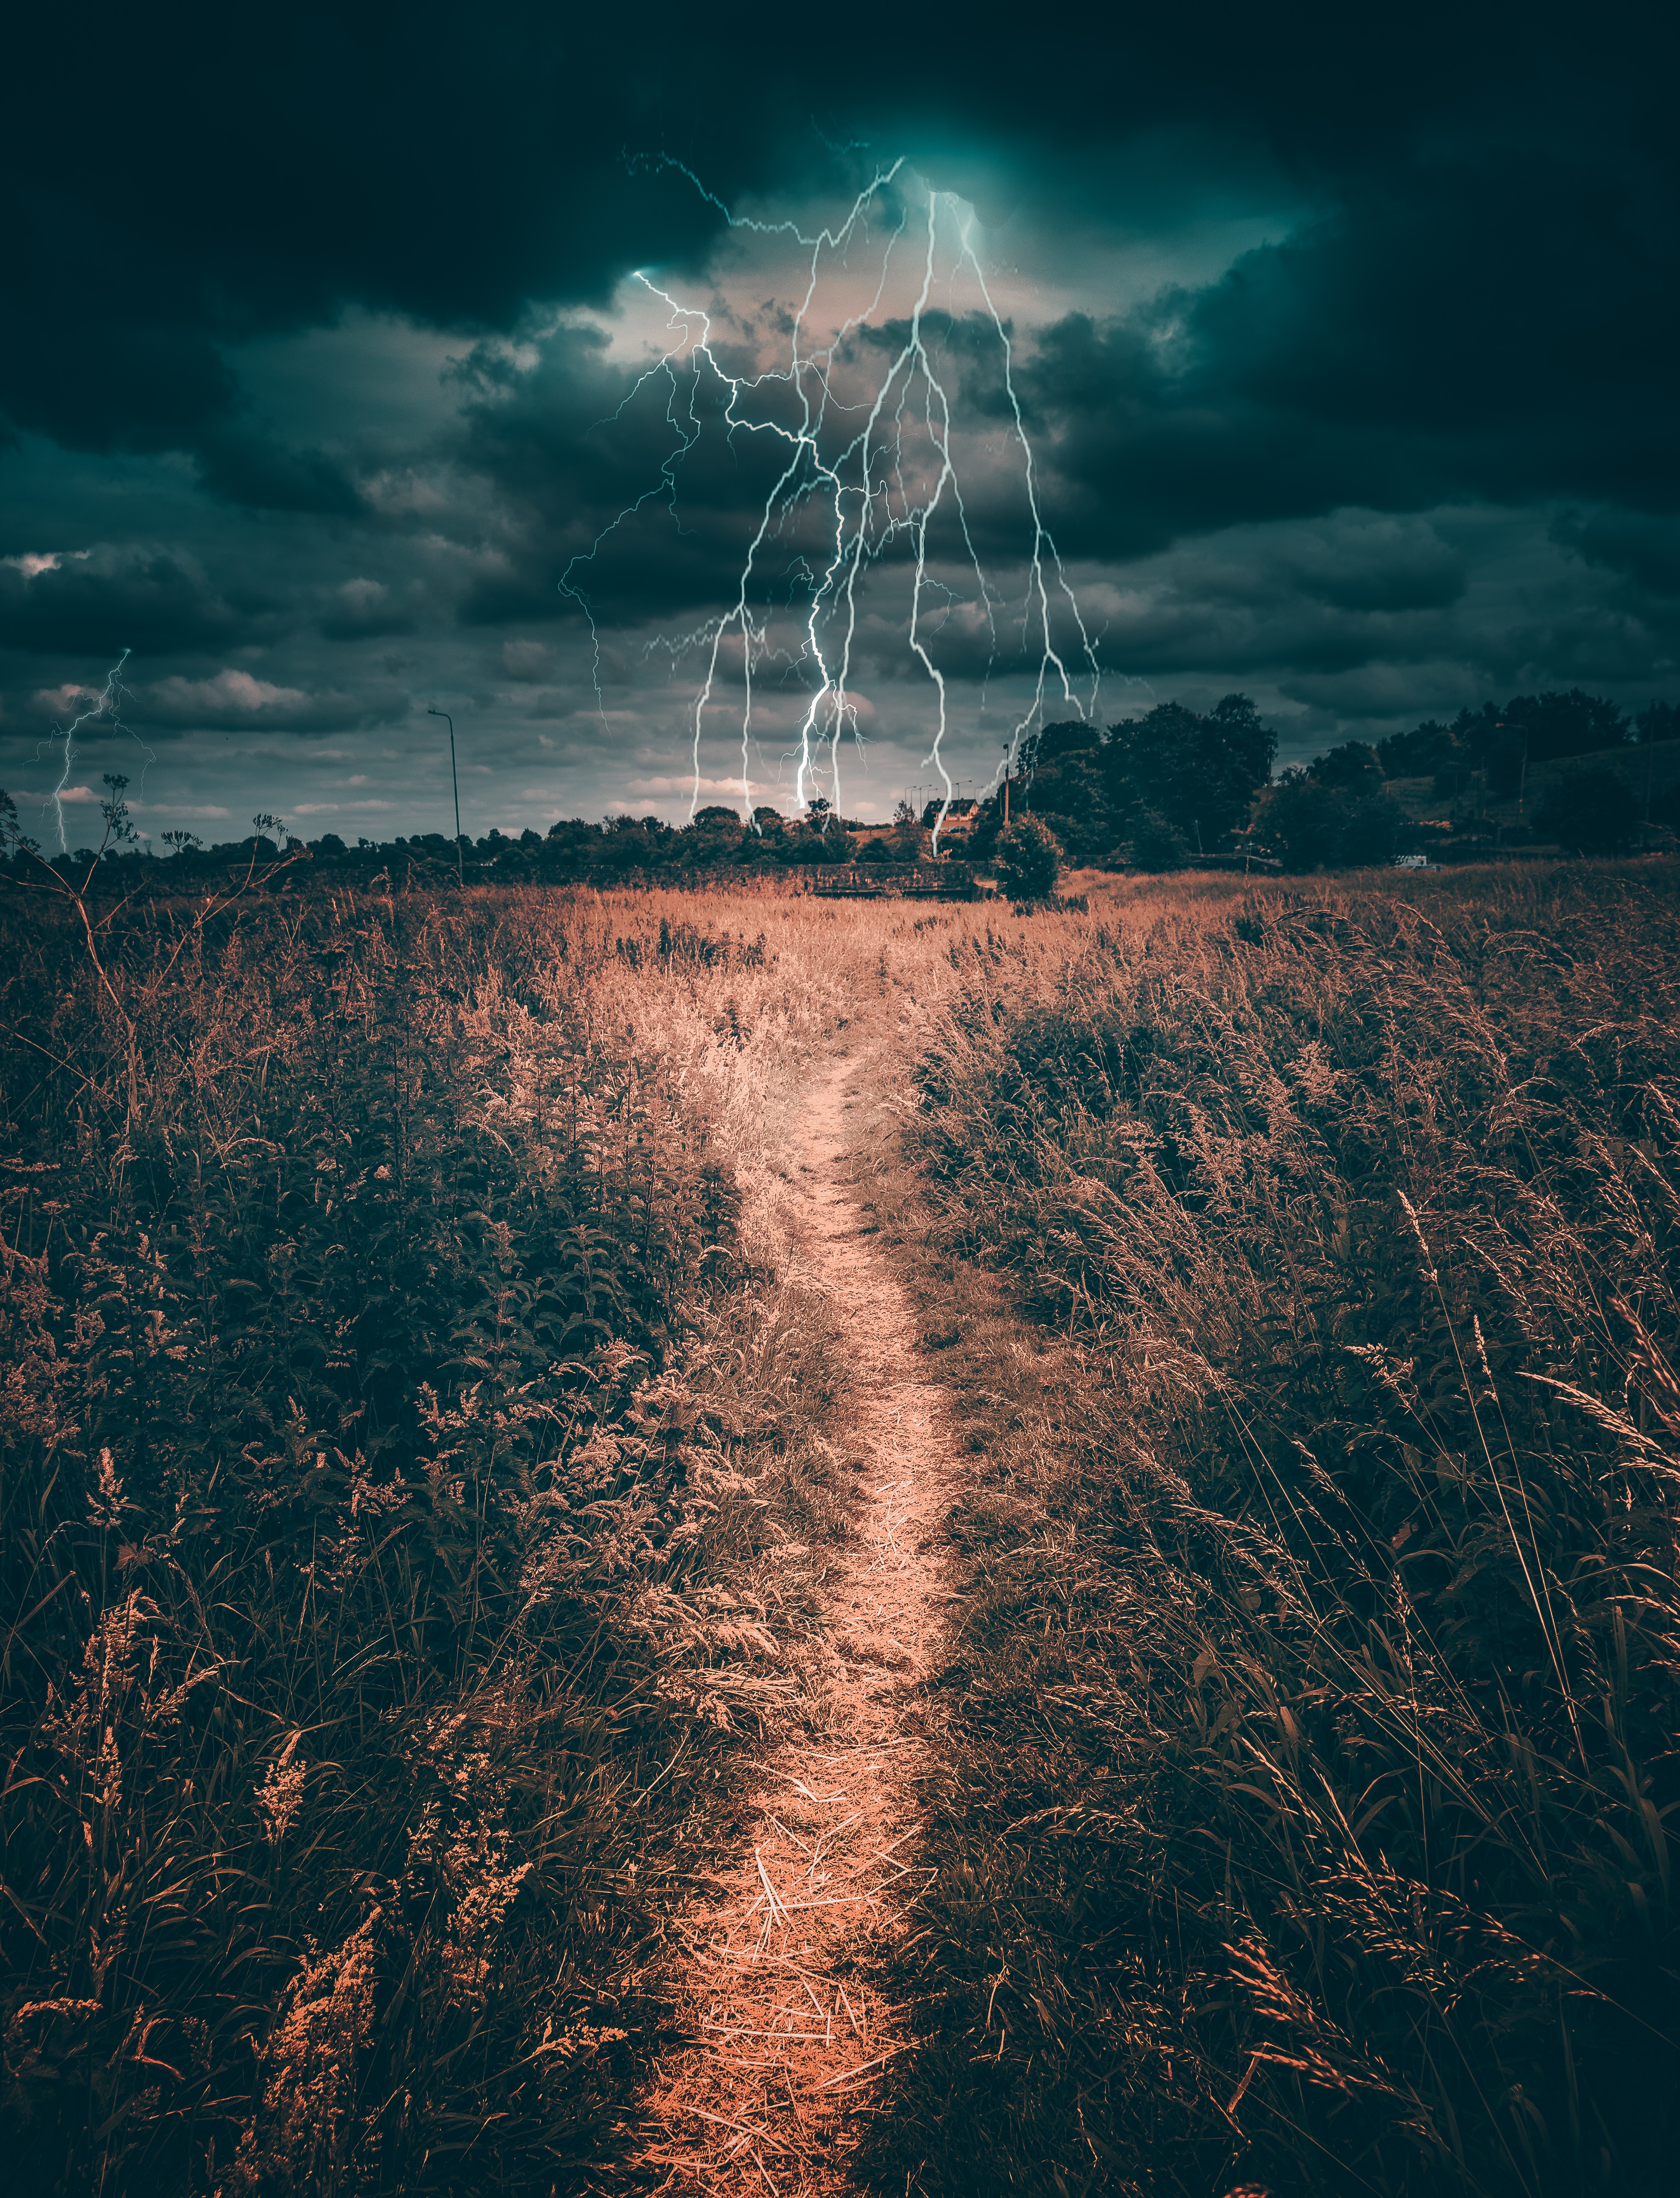 3LightningCrops:jonathan-bowers-531776-unsplash